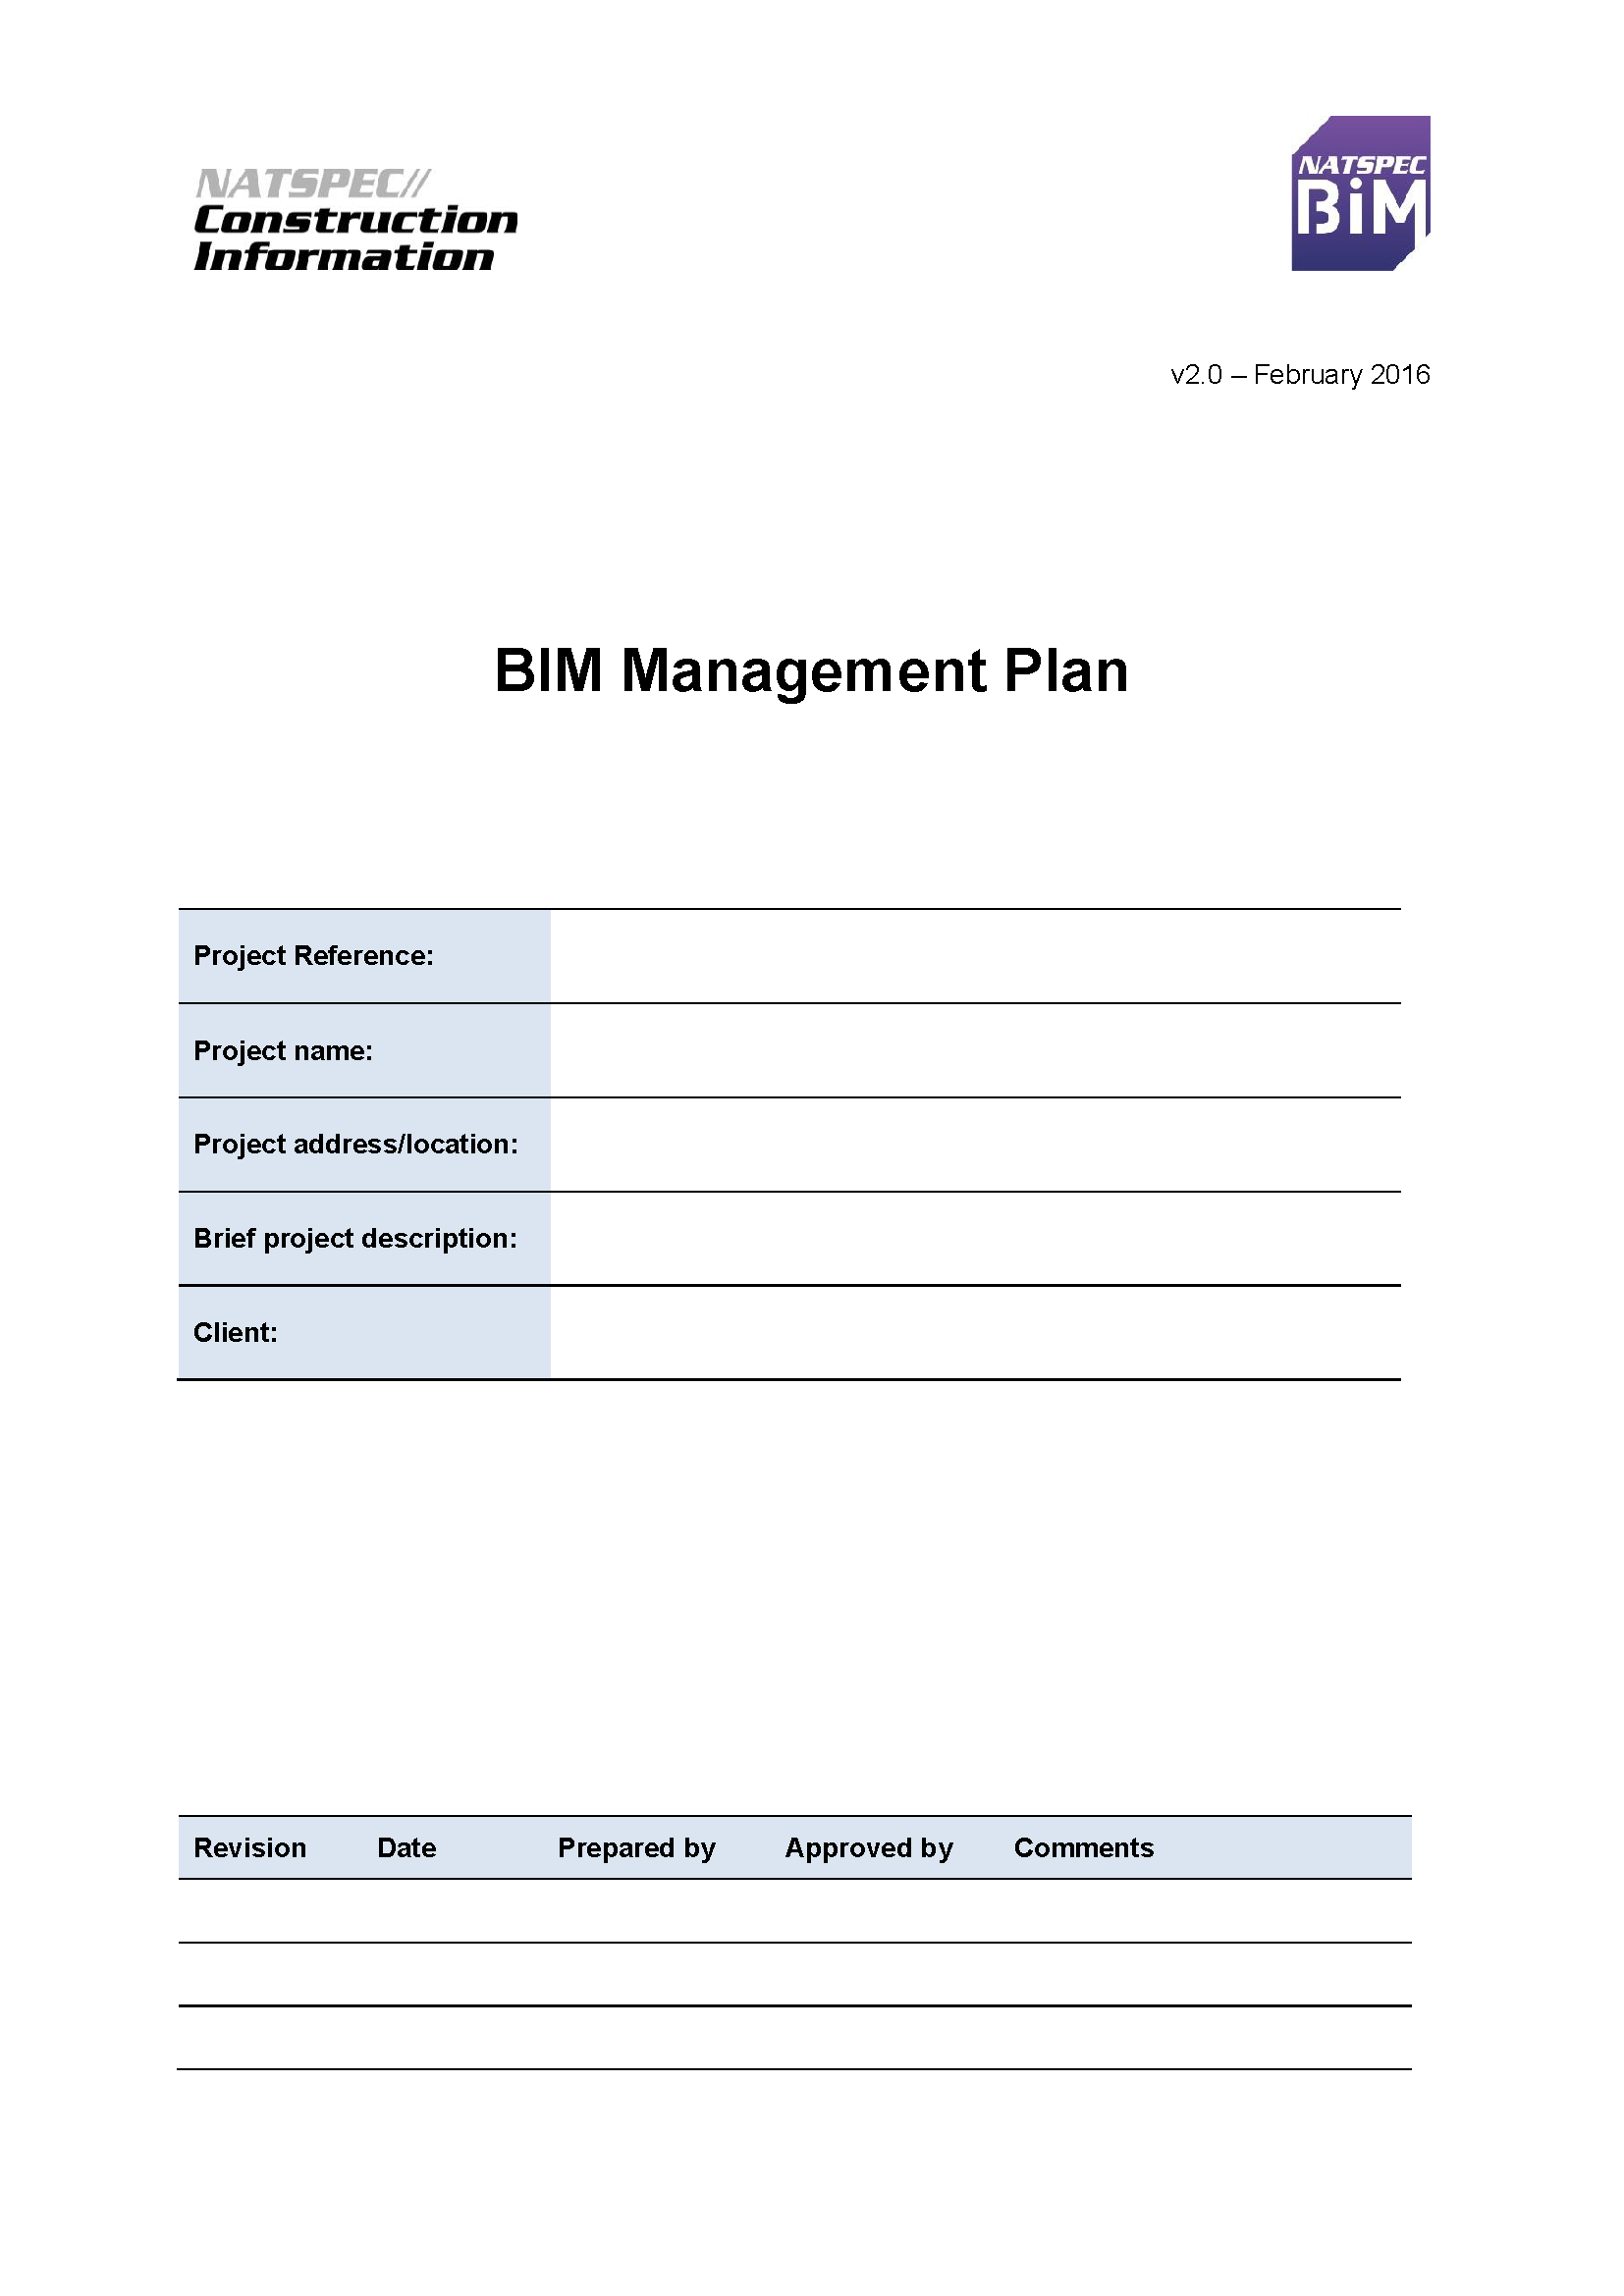 NATSPEC BIM Management Plan Templates